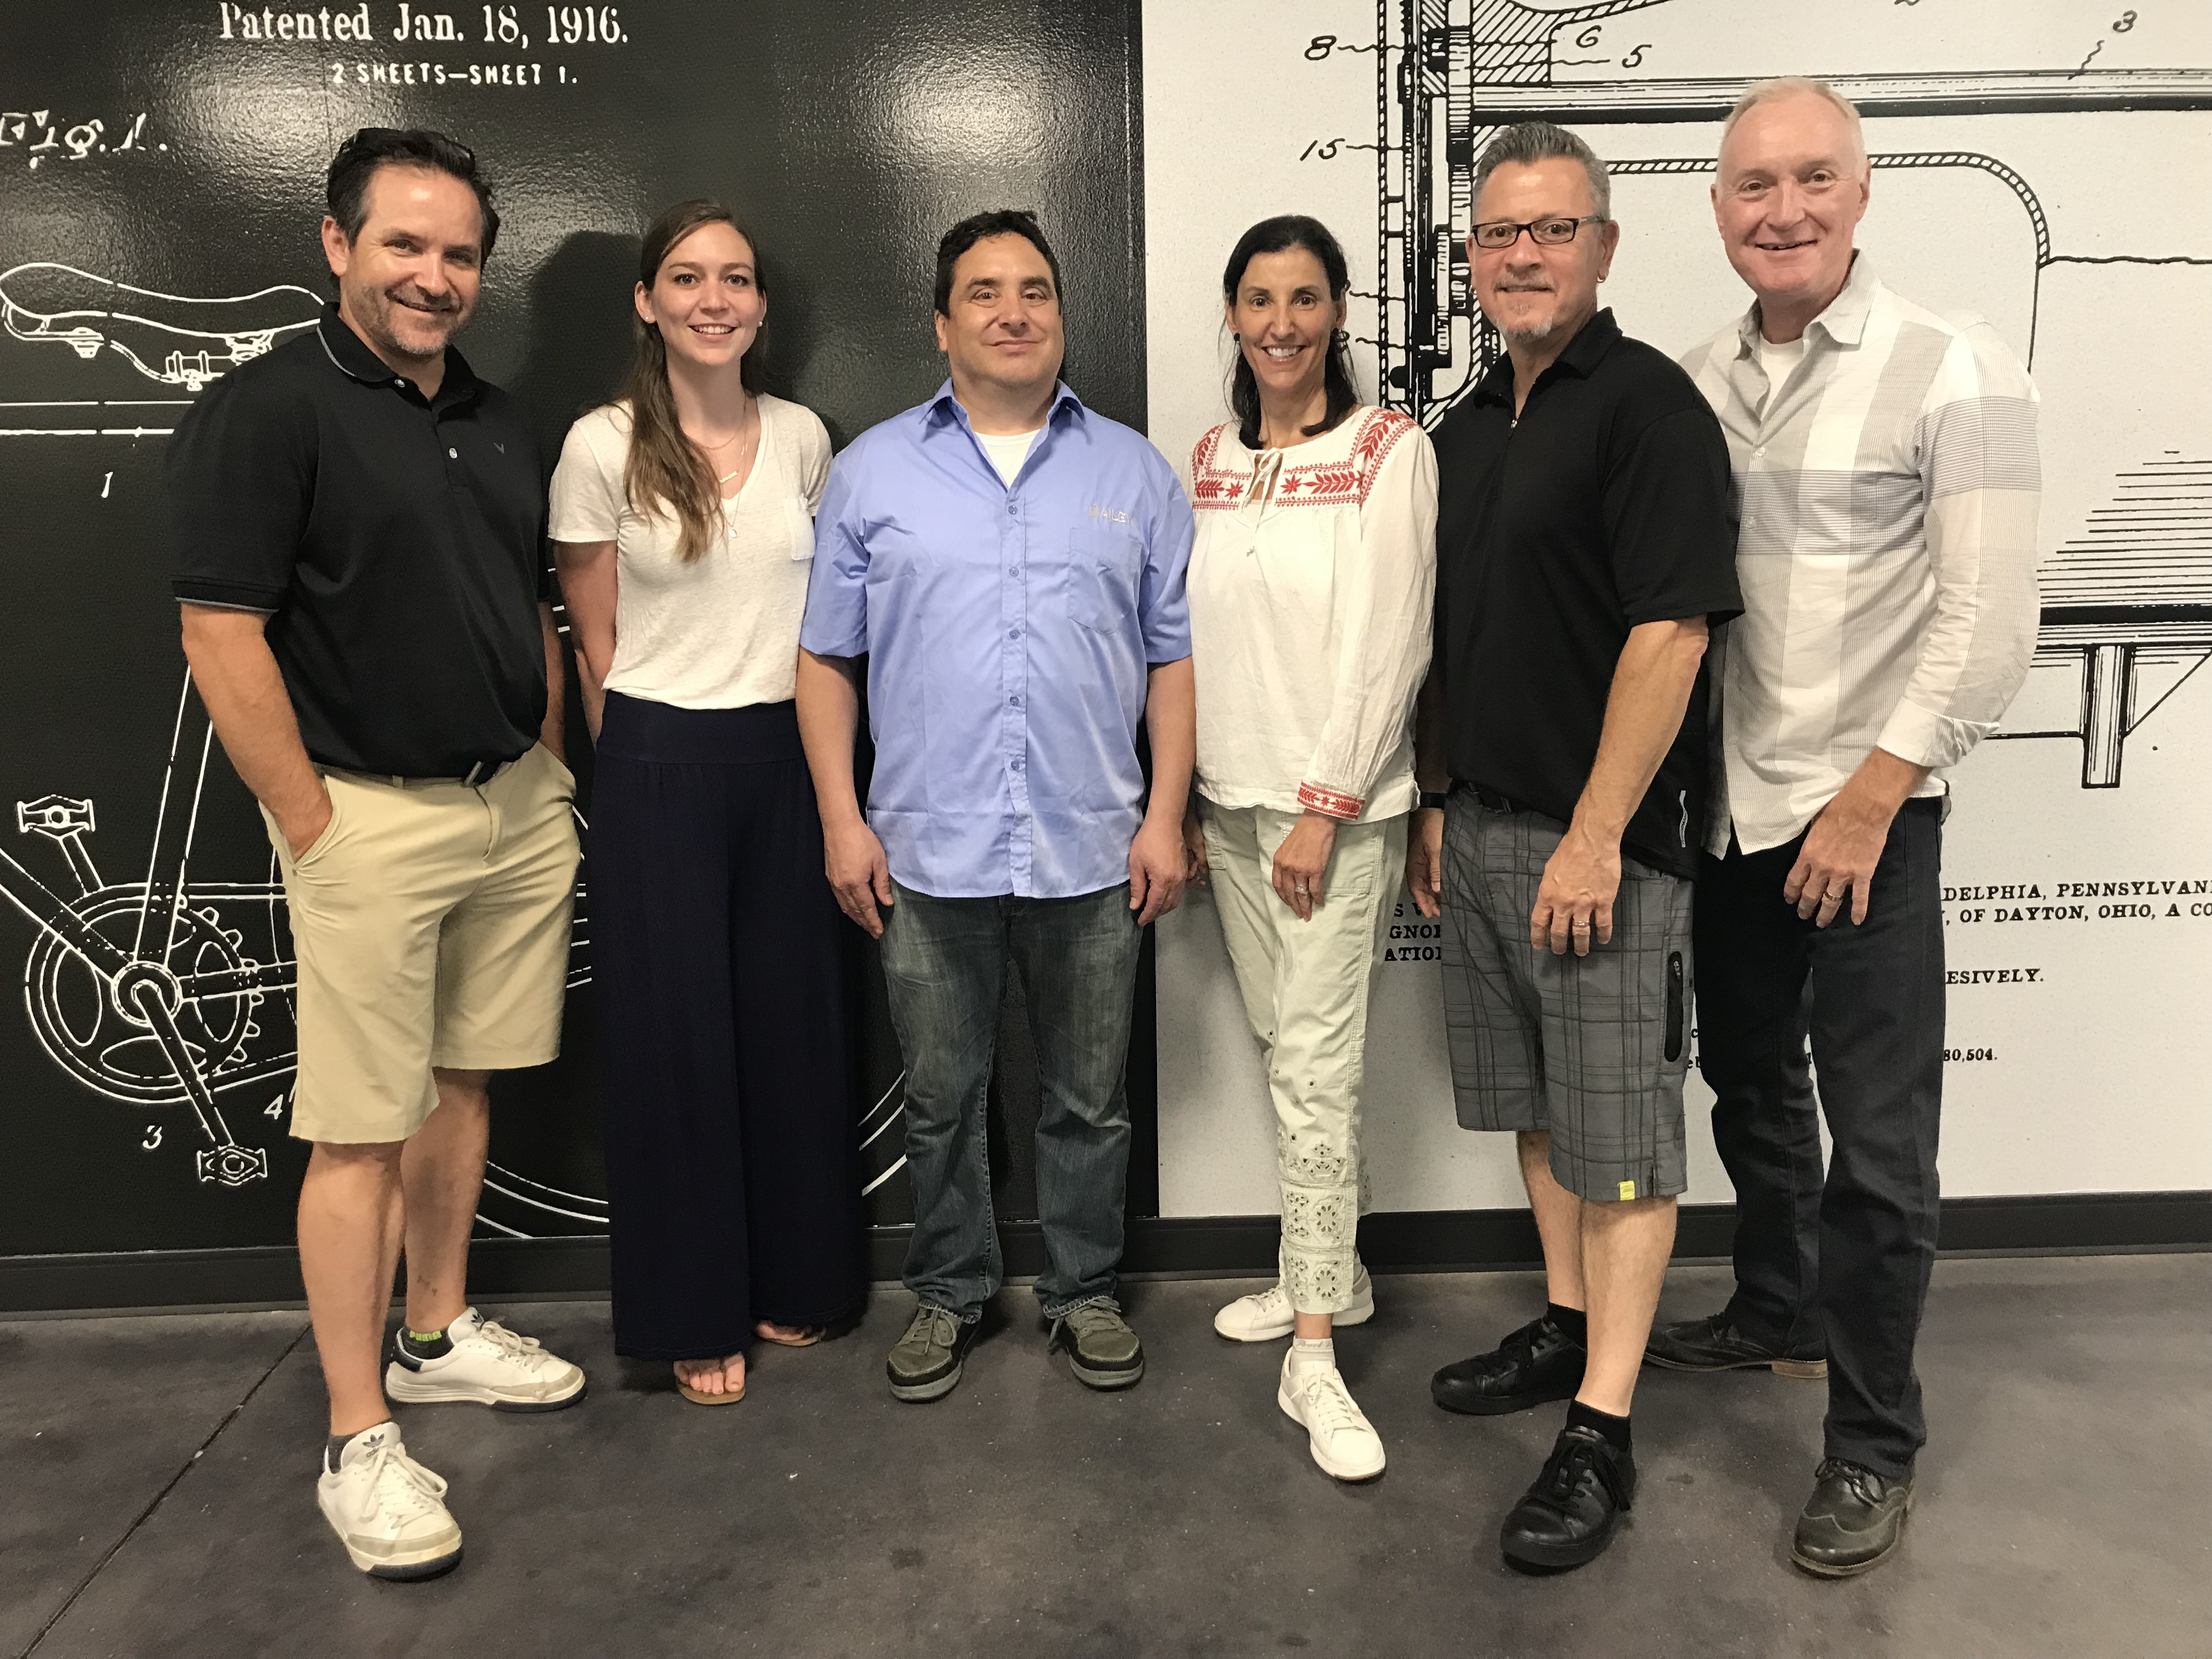 Huffy has hired 26 new employees in 2018 as it launches new brands, including the Batch Bicycles staff. Left to right: Bruno Maier, Kristina Borchert, Joe Atocha, Dorothy Pacheco, Chris Keller and Huffy president and CEO Bill Smith.